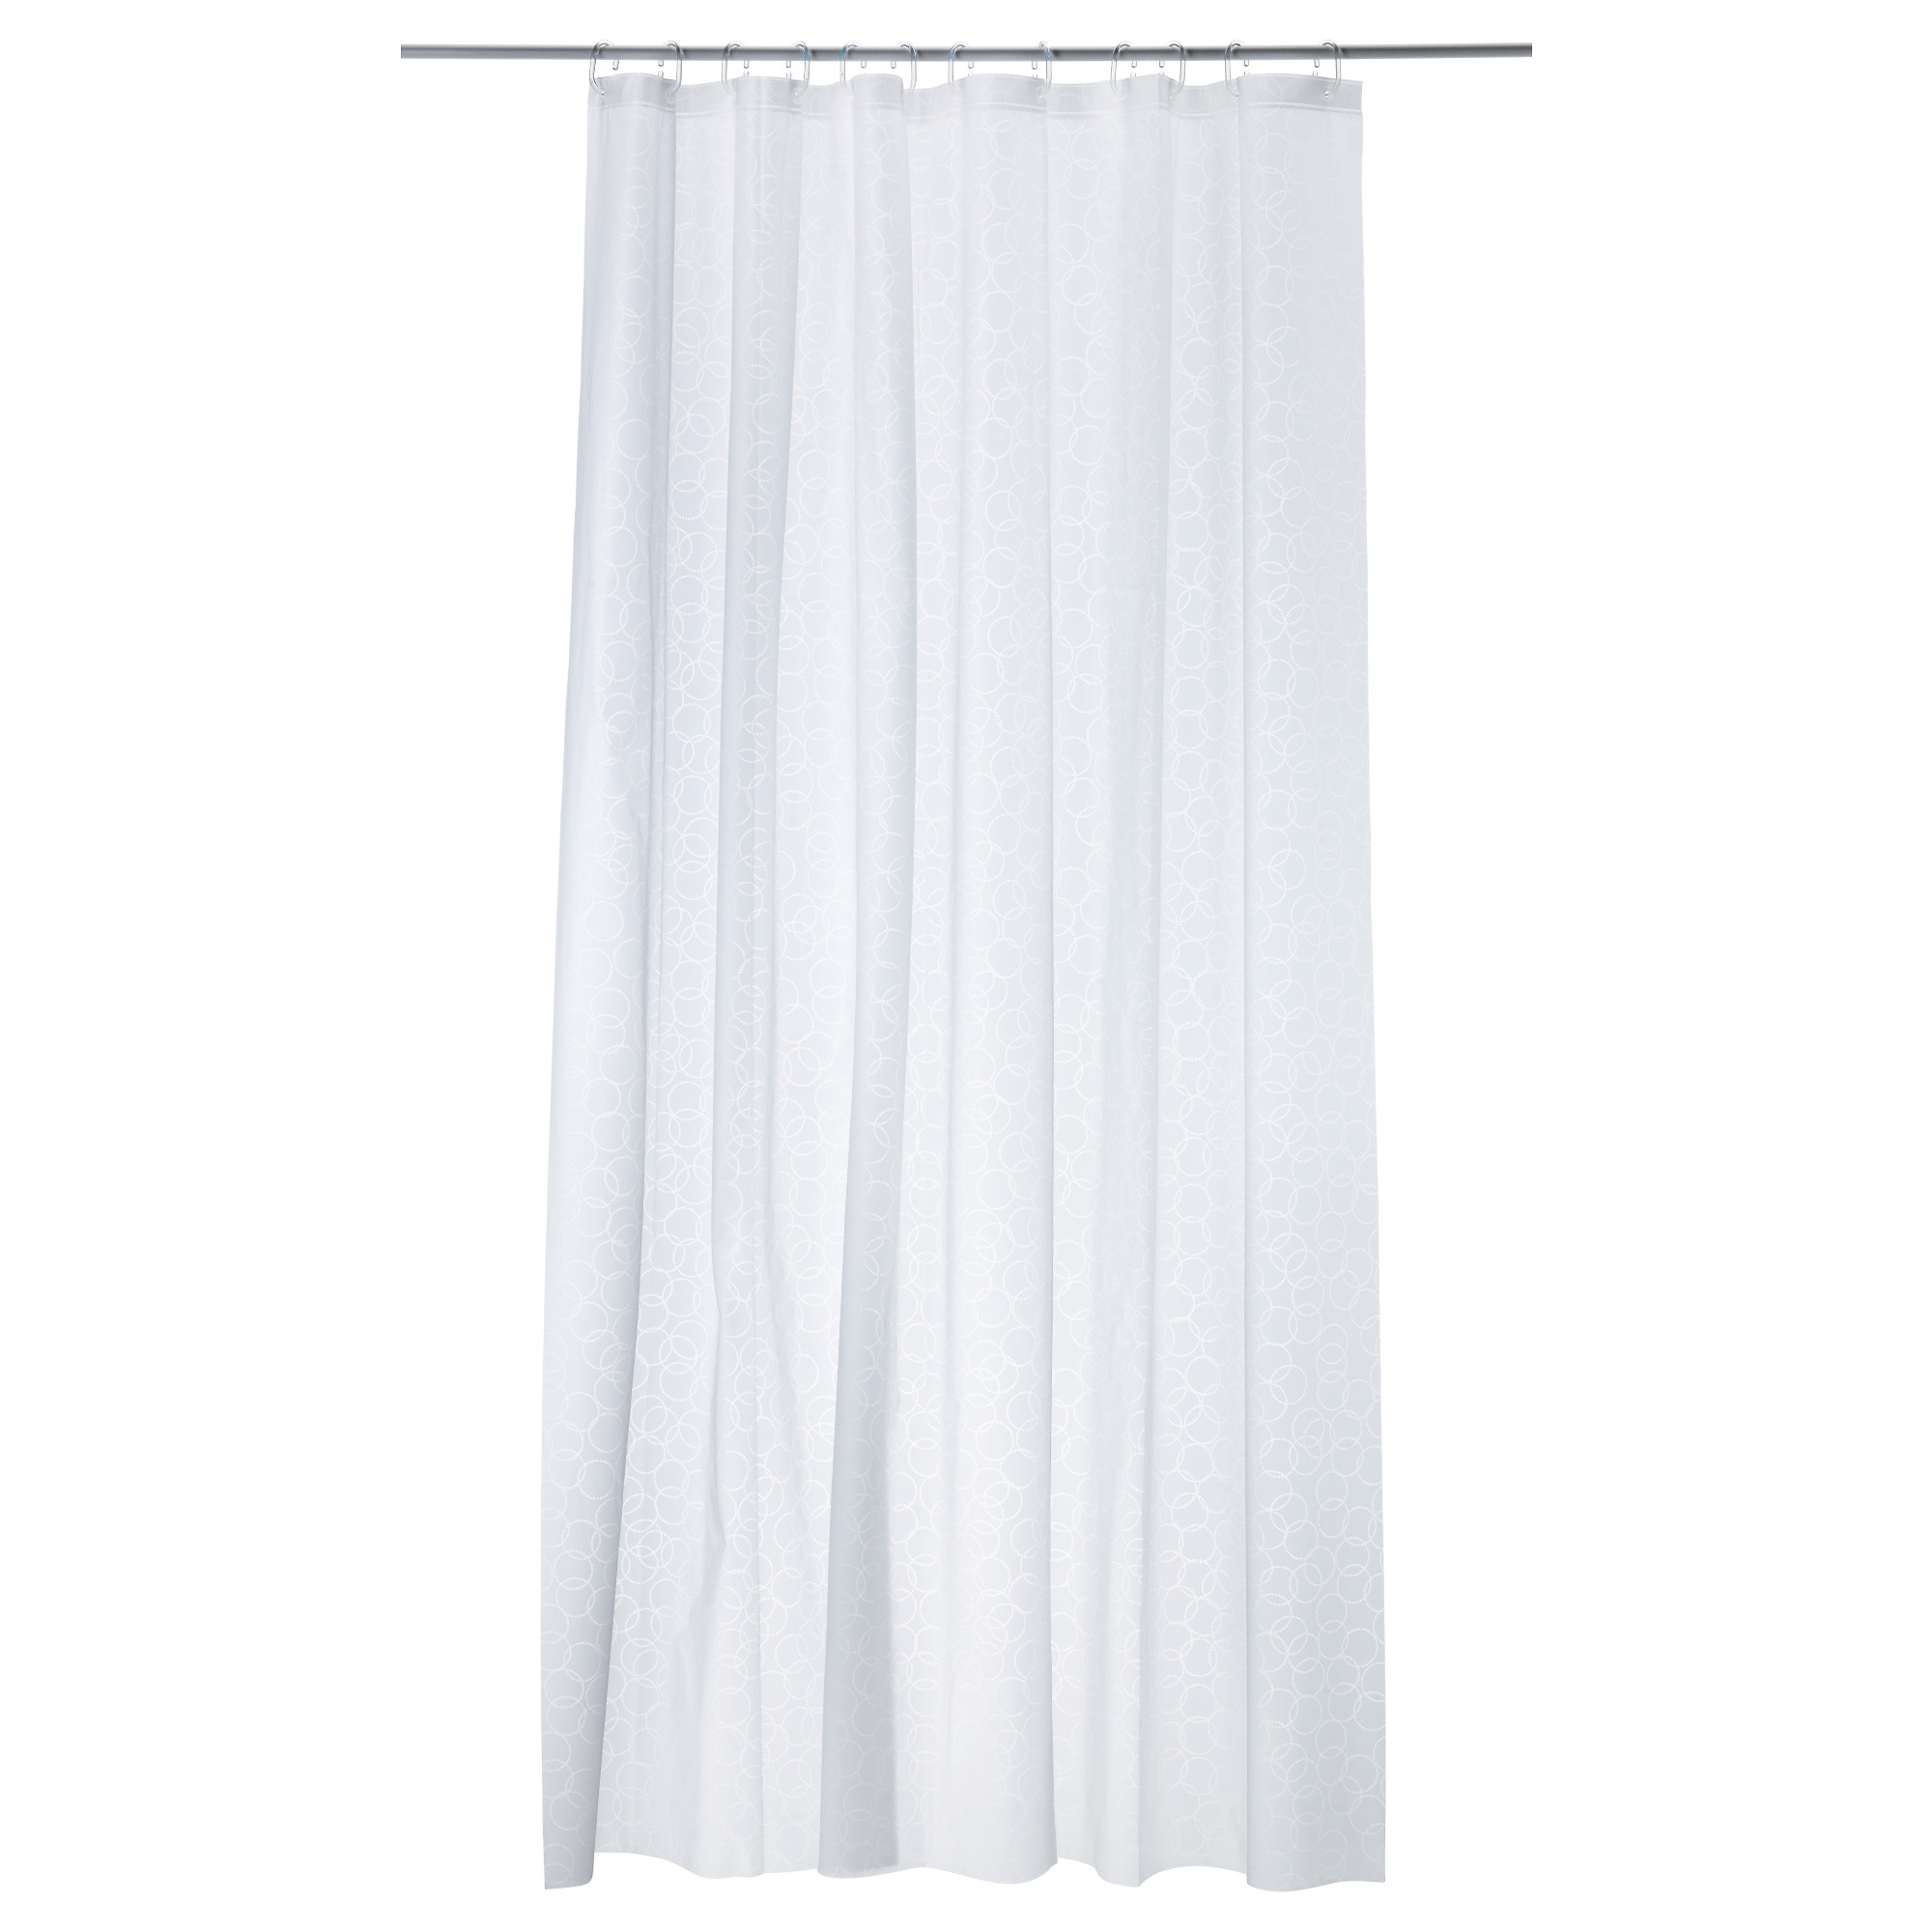 classy design shower curtains ikea inconjunction with innaren shower curtain UHOGSRF